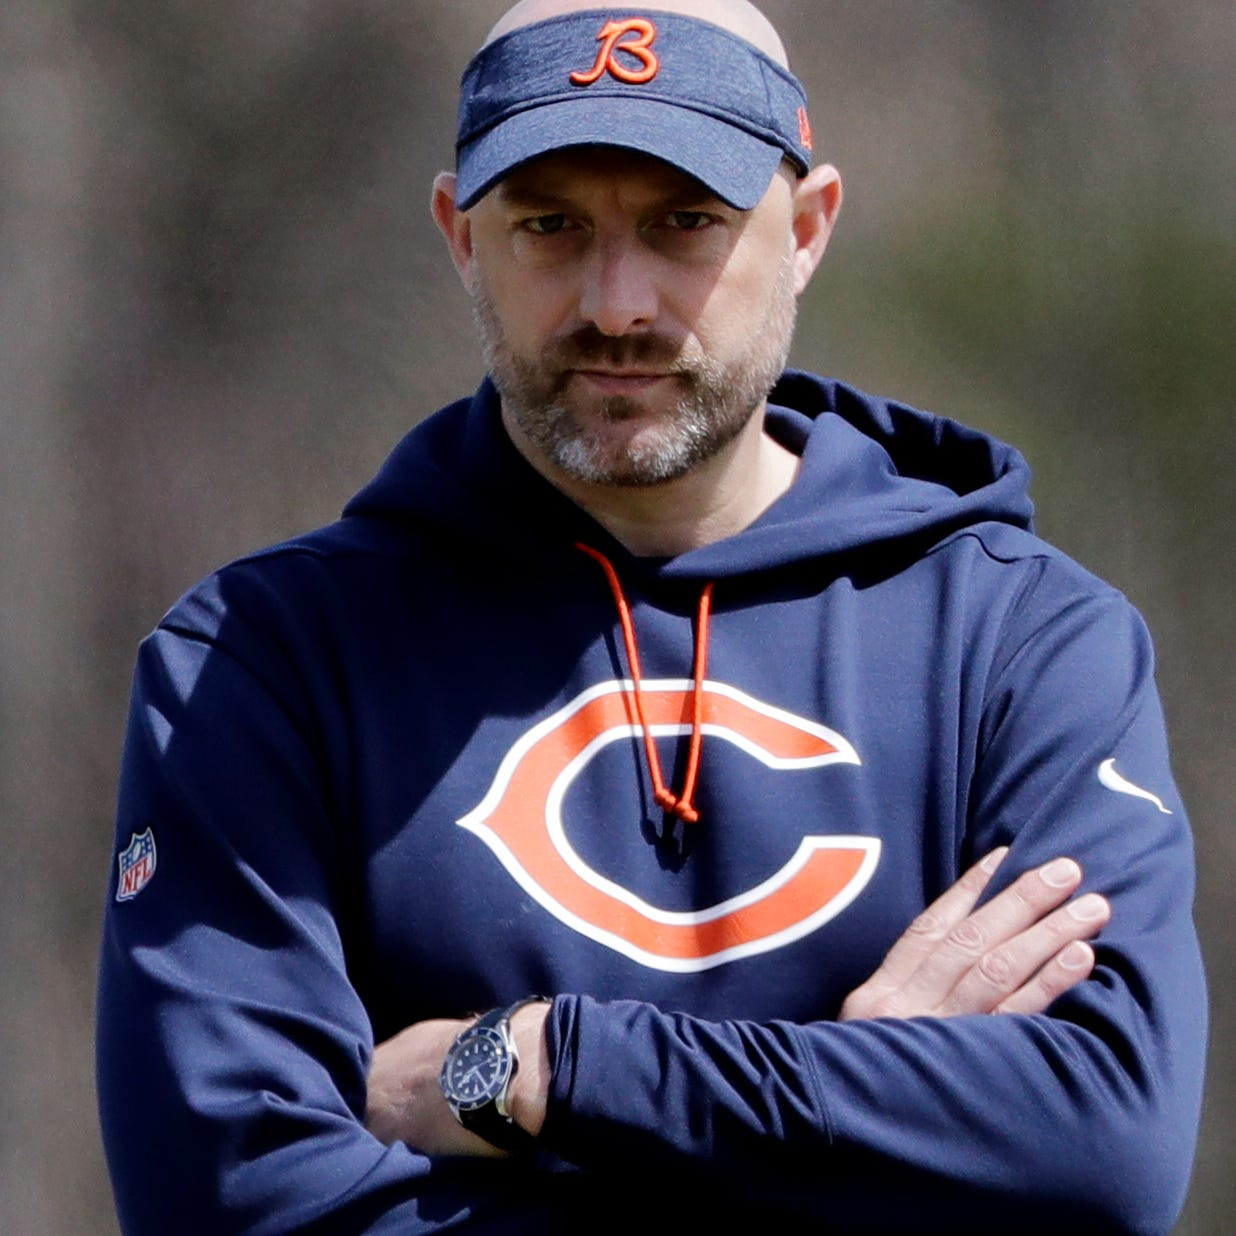 Chicago Bears head coach Matt Nagy watches the team's rookie minicamp.